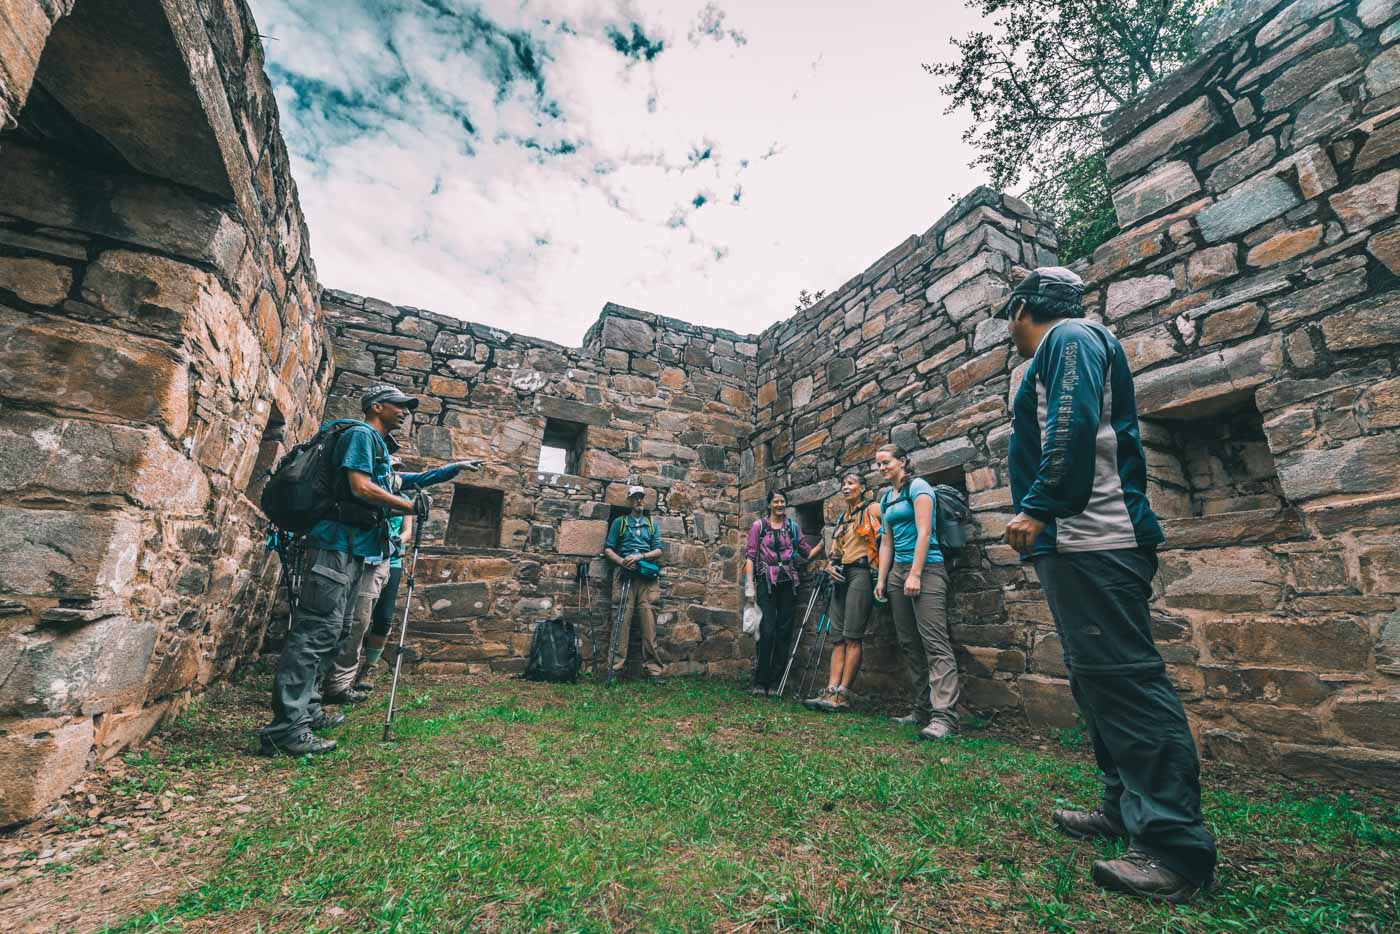 Our guide William shares insights about the Choquequirao Ruins